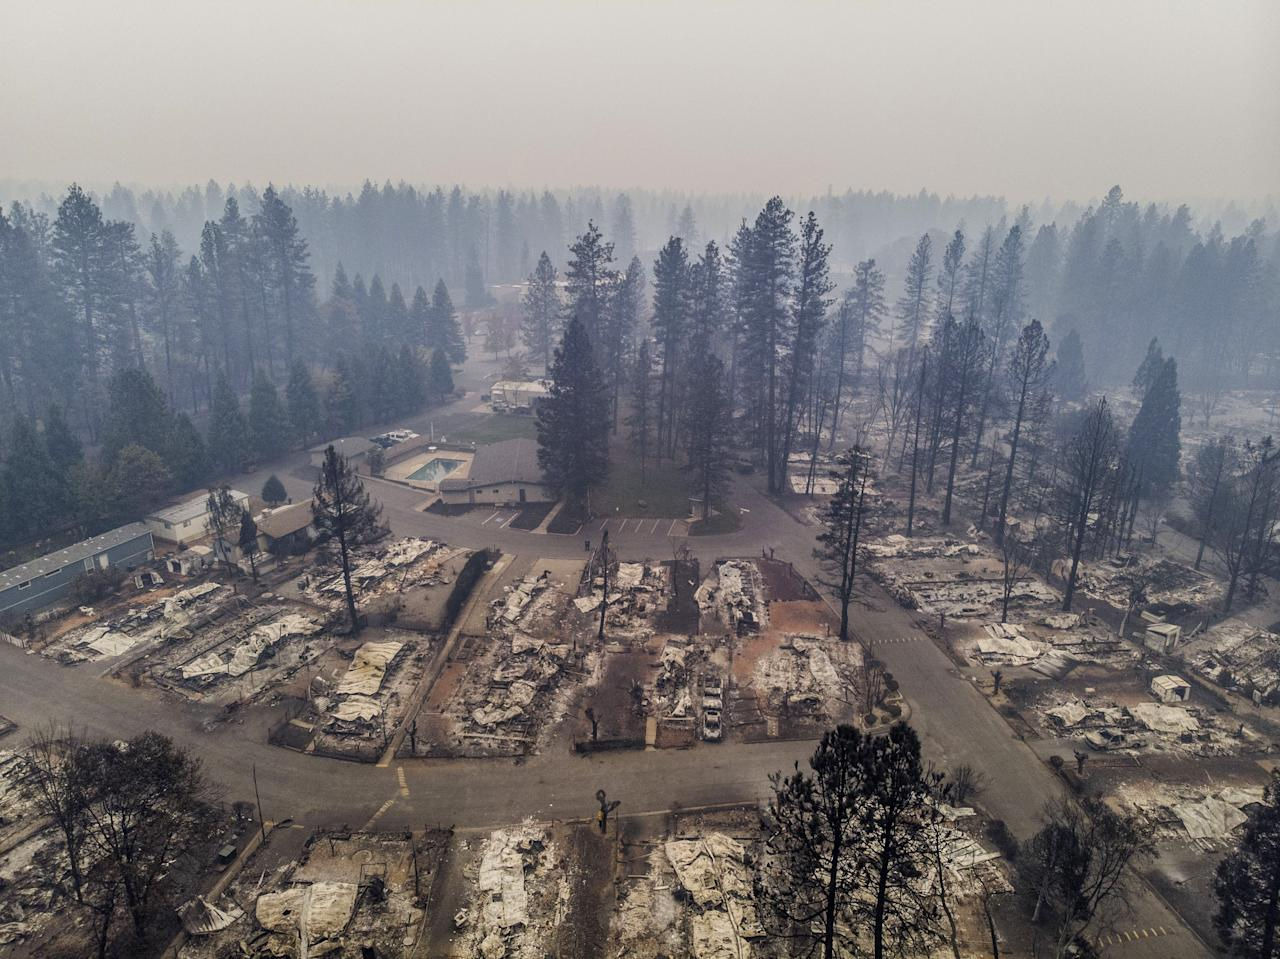 <p>Most of the homes at the Pine Grove Mobile Home Park were destroyed by the Camp Fire that ran through Paradise and surrounding communities, Nov. 13, 2018. (Photo: Hector Amezcua/Sacramento Bee via ZUMA Wire) </p>